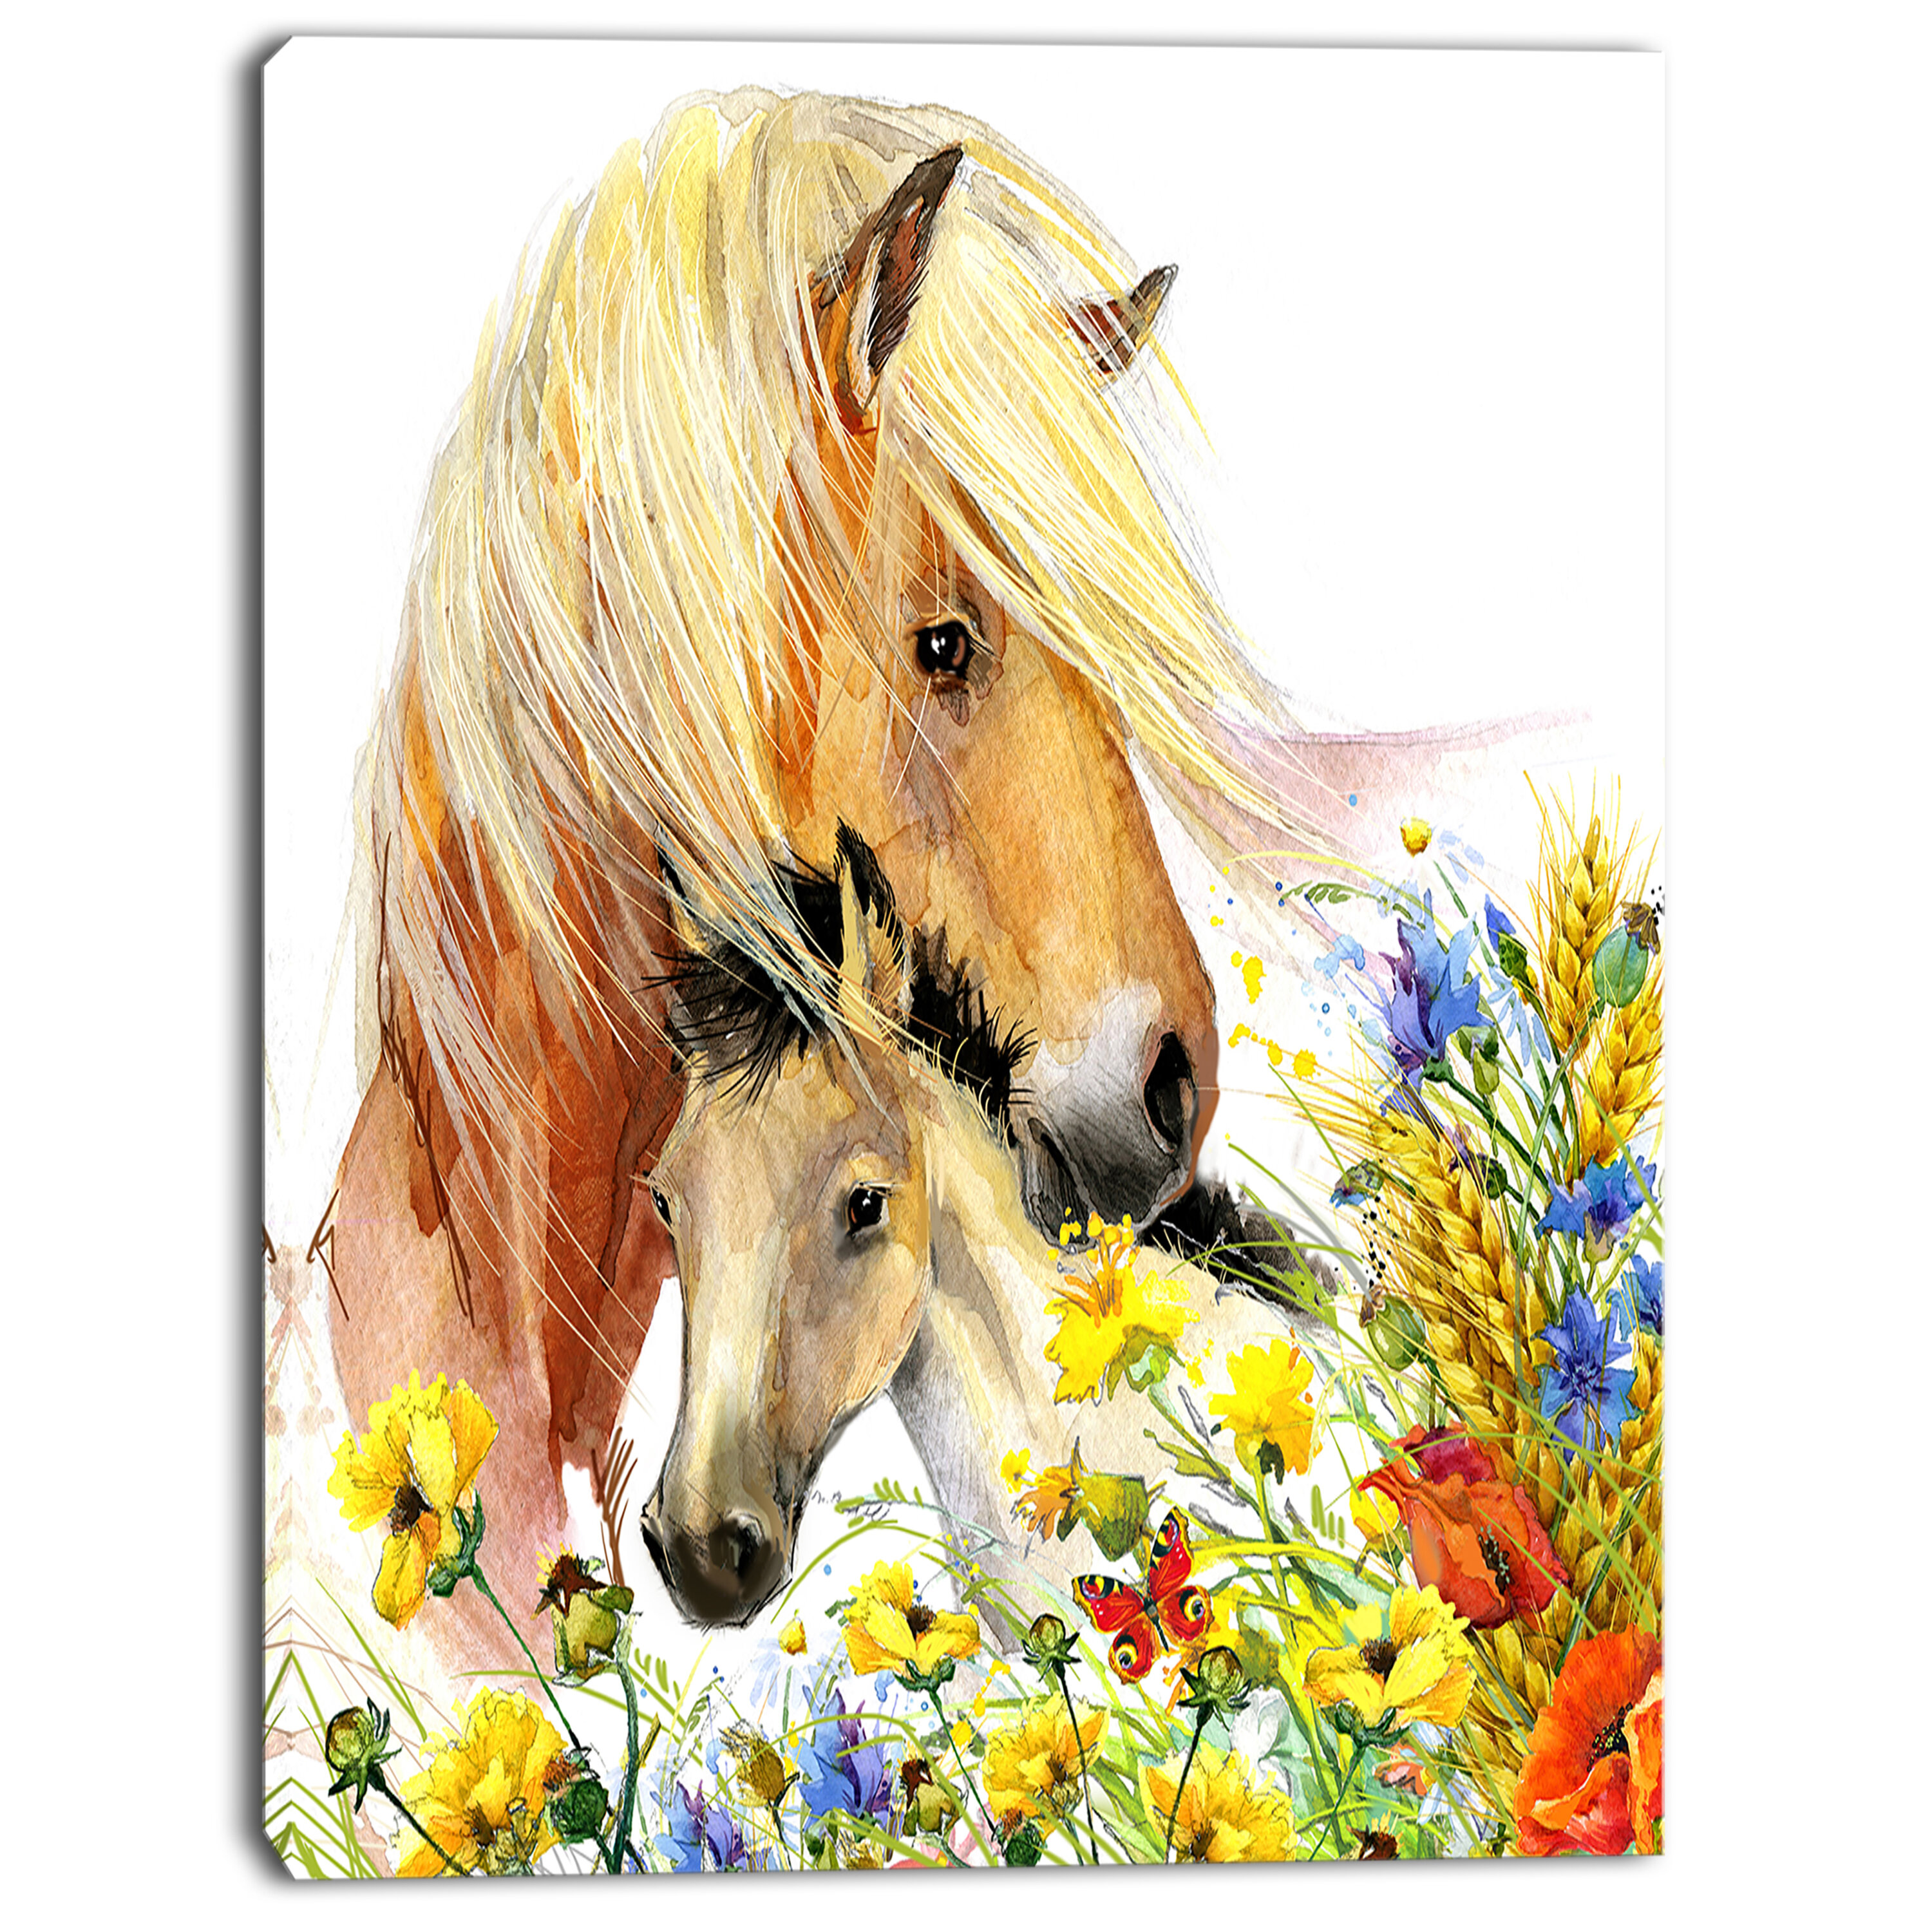 Designart Animal Horse And Foal With Meadow Painting Print